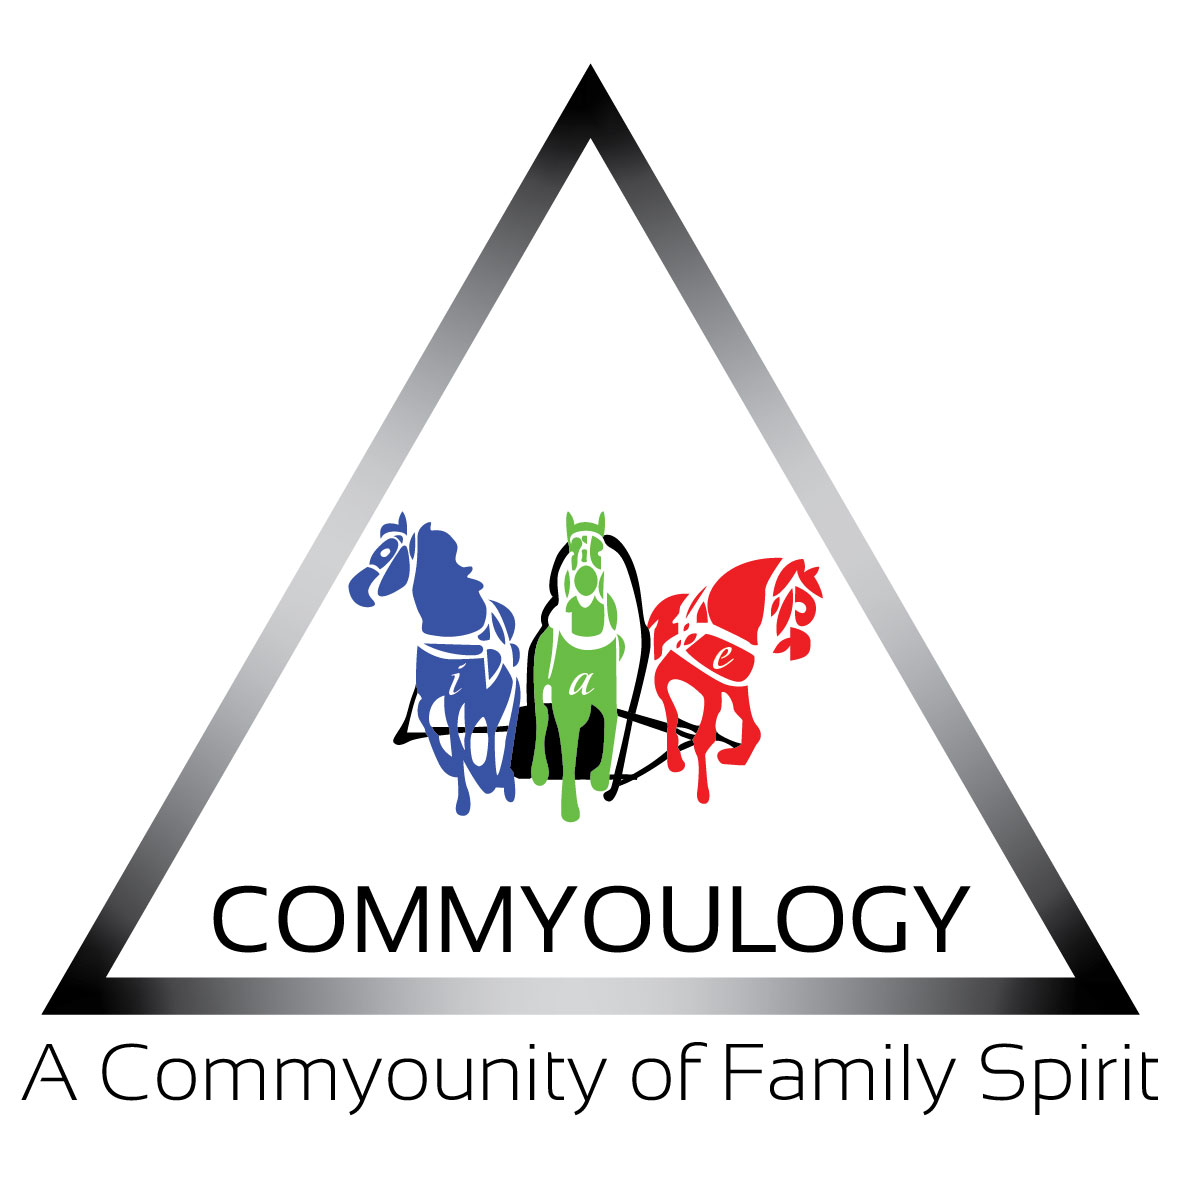 Commyoulogy